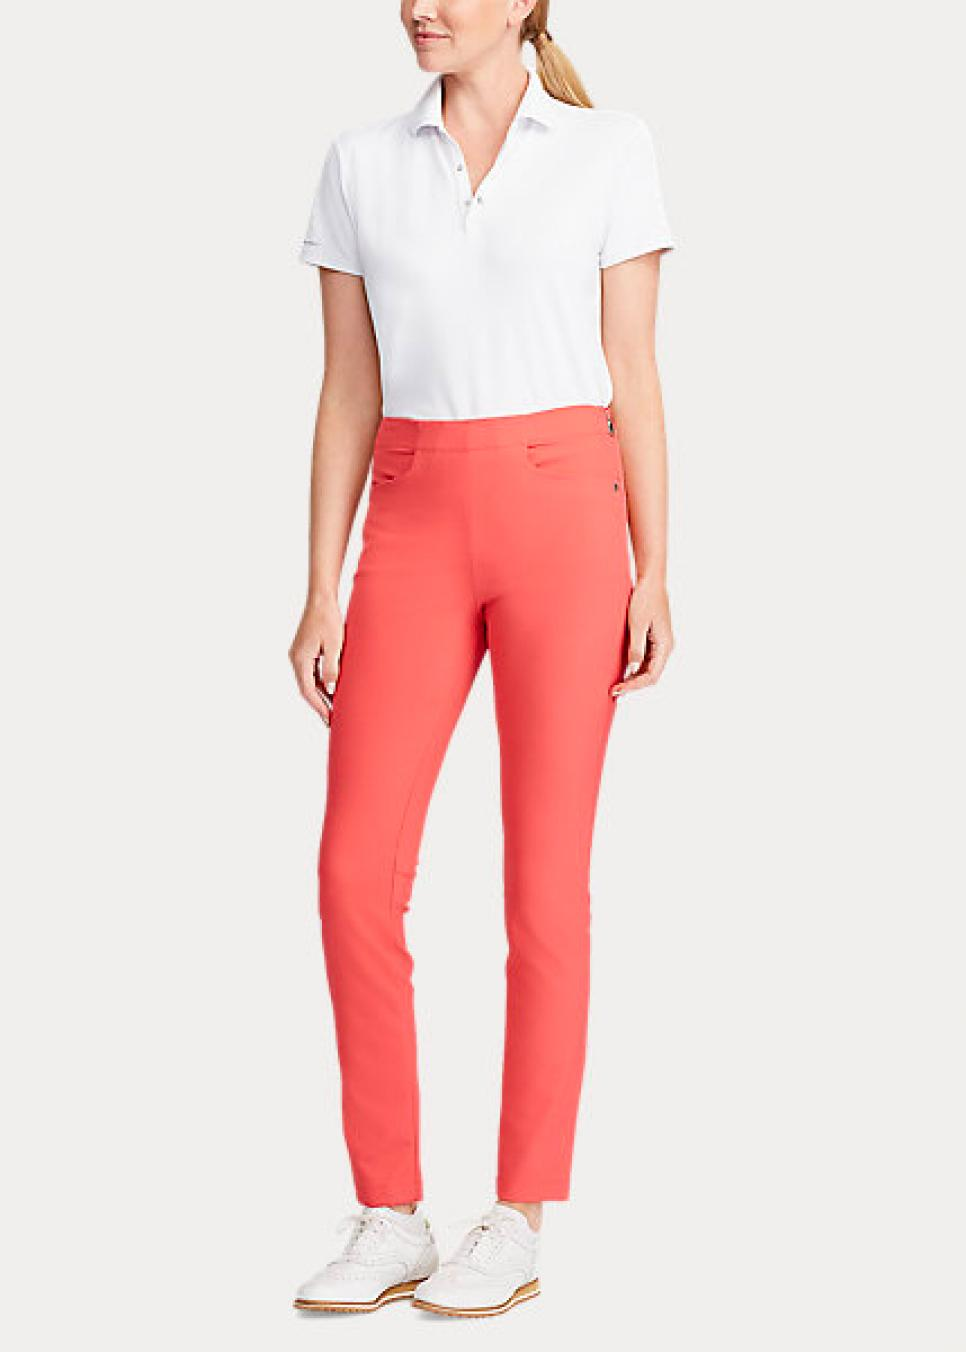 Ralph Lauren RLX Womens Golf Pants HL.jpg